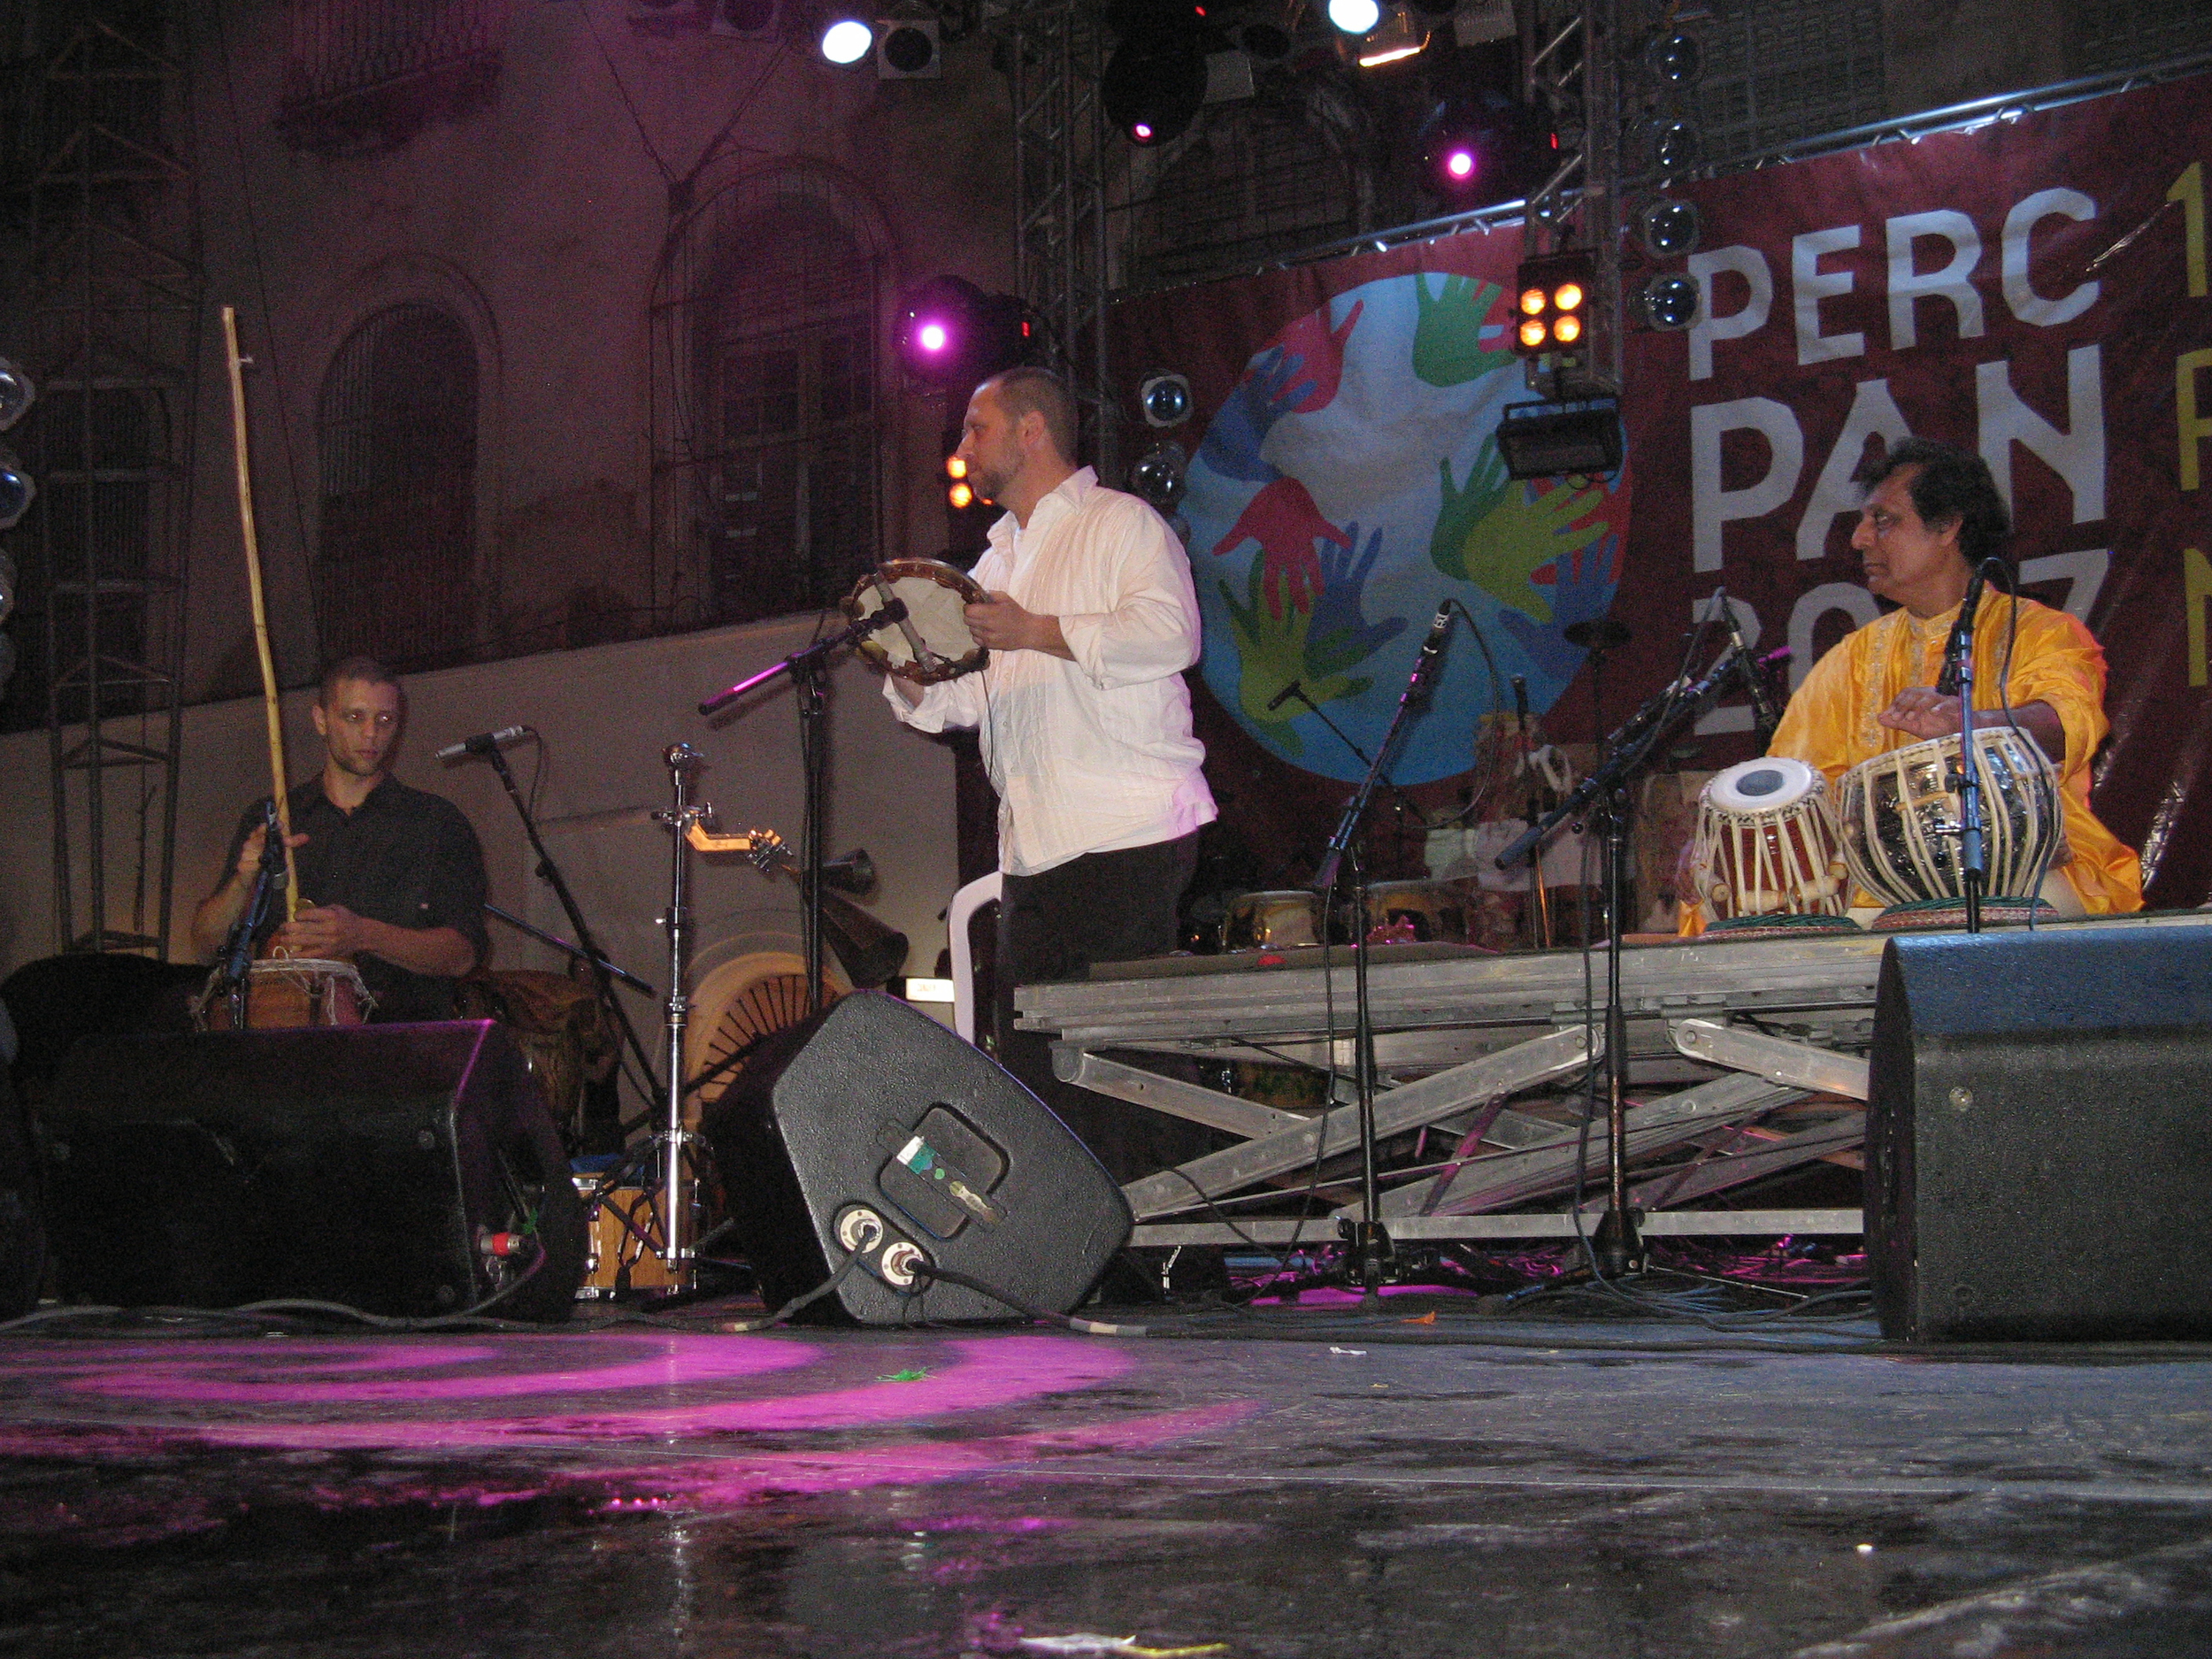 Andrew Grueschow, Randy Gloss, Swapan Chaudhuri in Salvador Bahia at PercPan 14 (5/25/07)